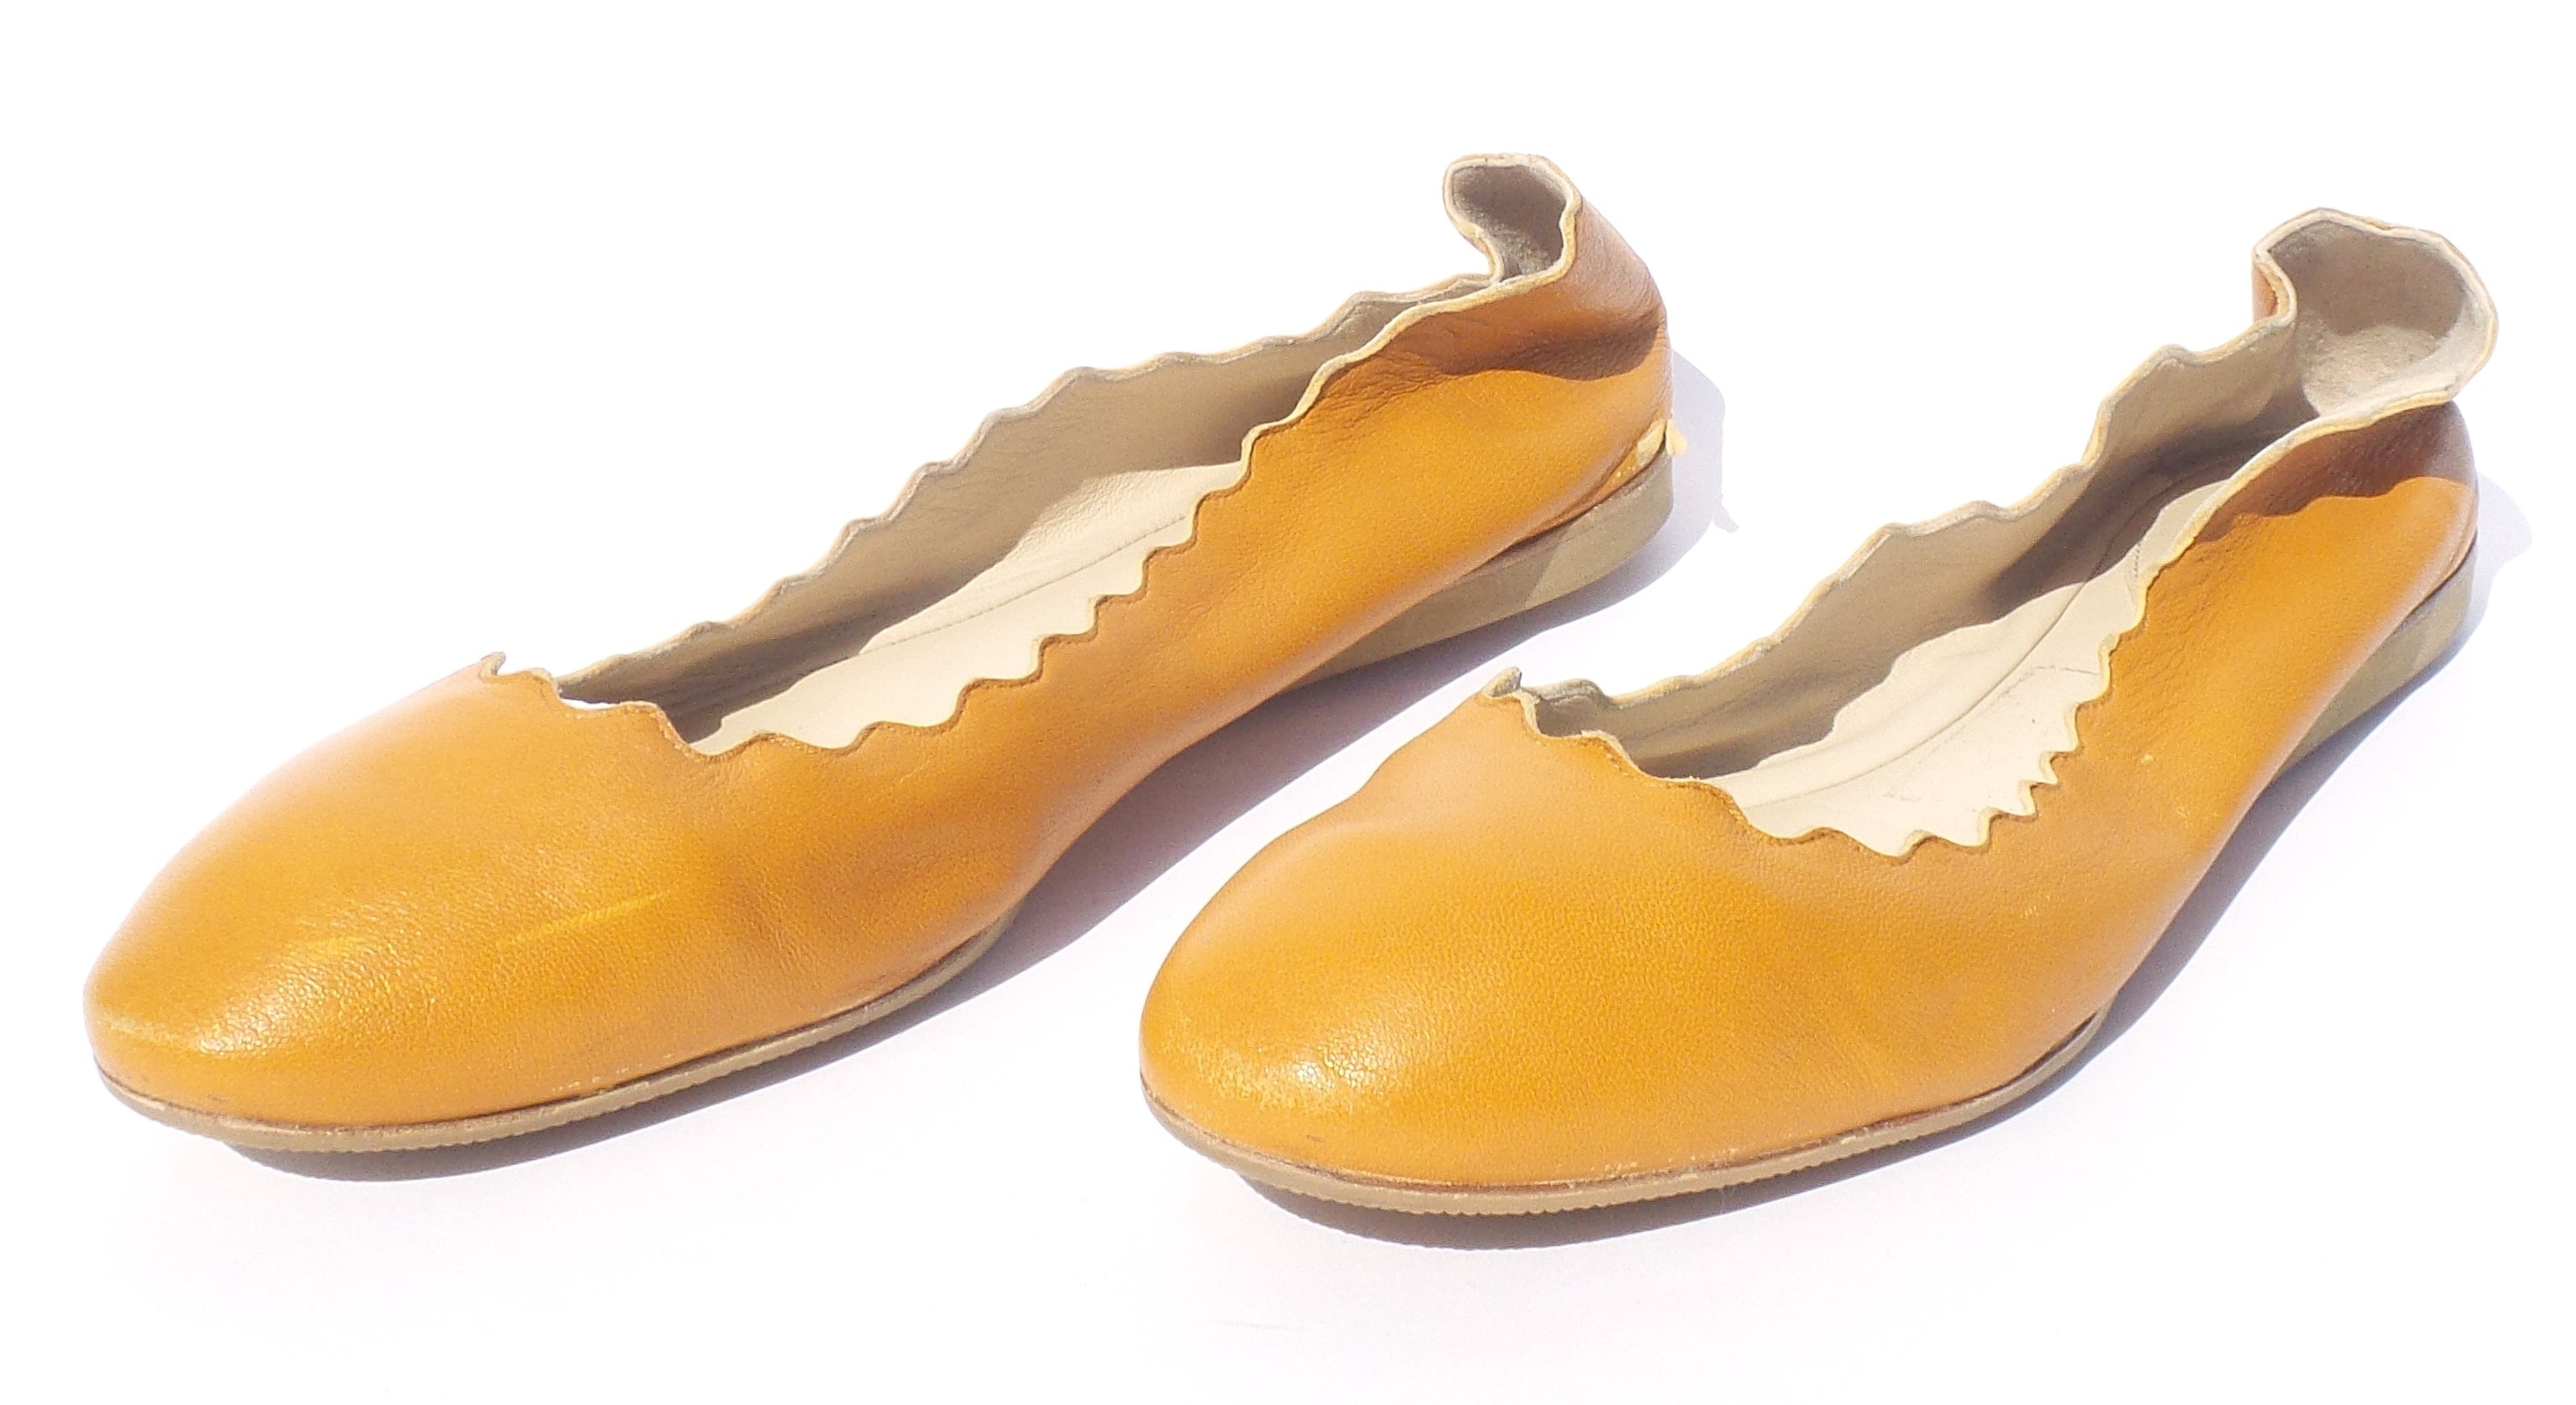 'Sold' CHLOE Lauren Caramel Honey Camel Tan Leather Scalloped Ballet Flats 38.5 39 FC